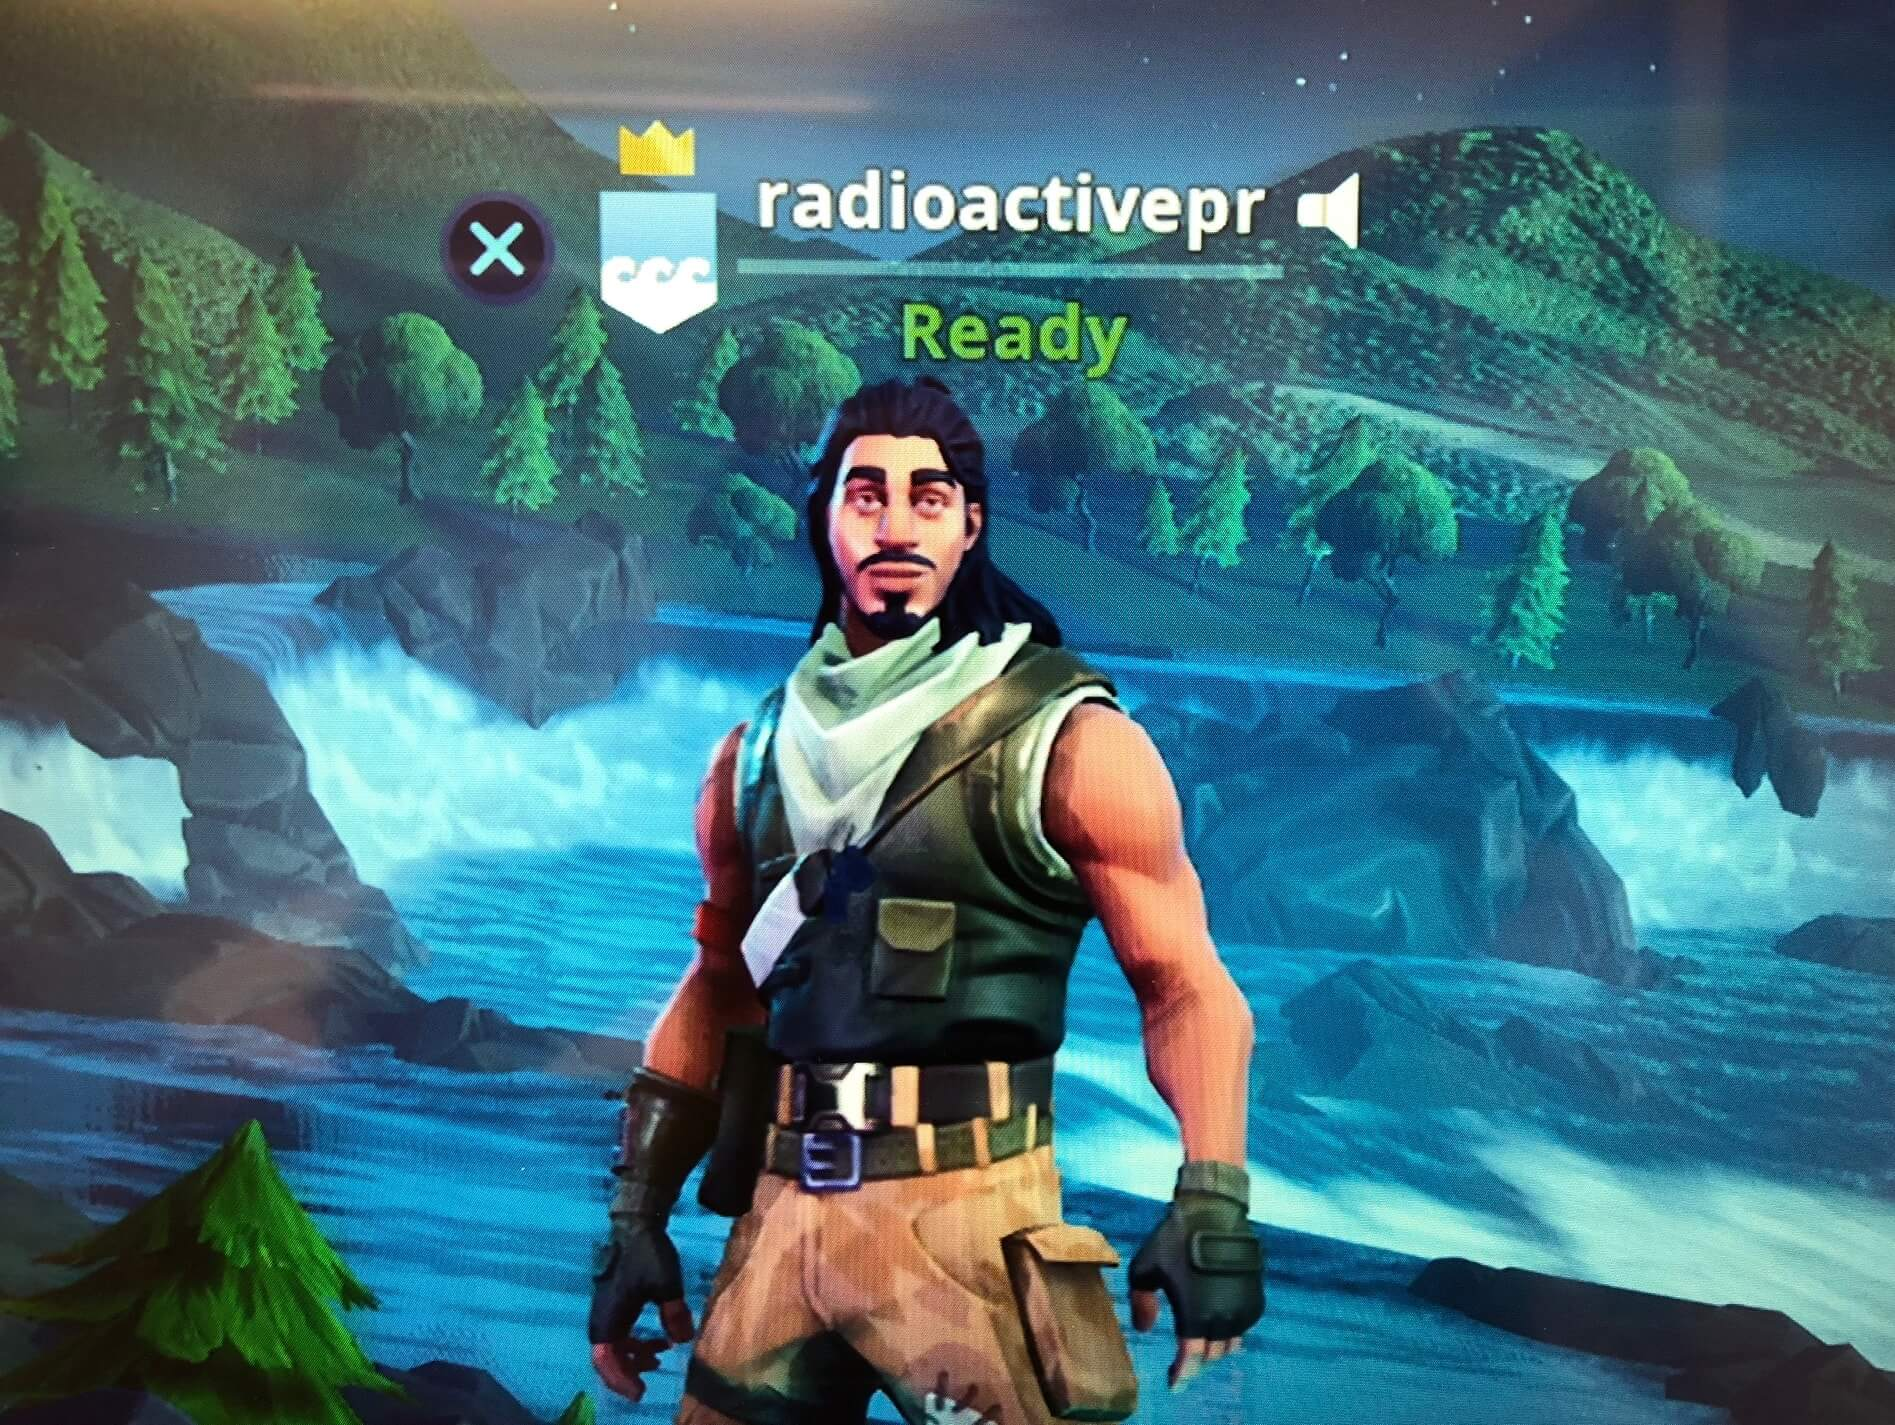 Fortnite and PR: Want a free PR consultation? Play online